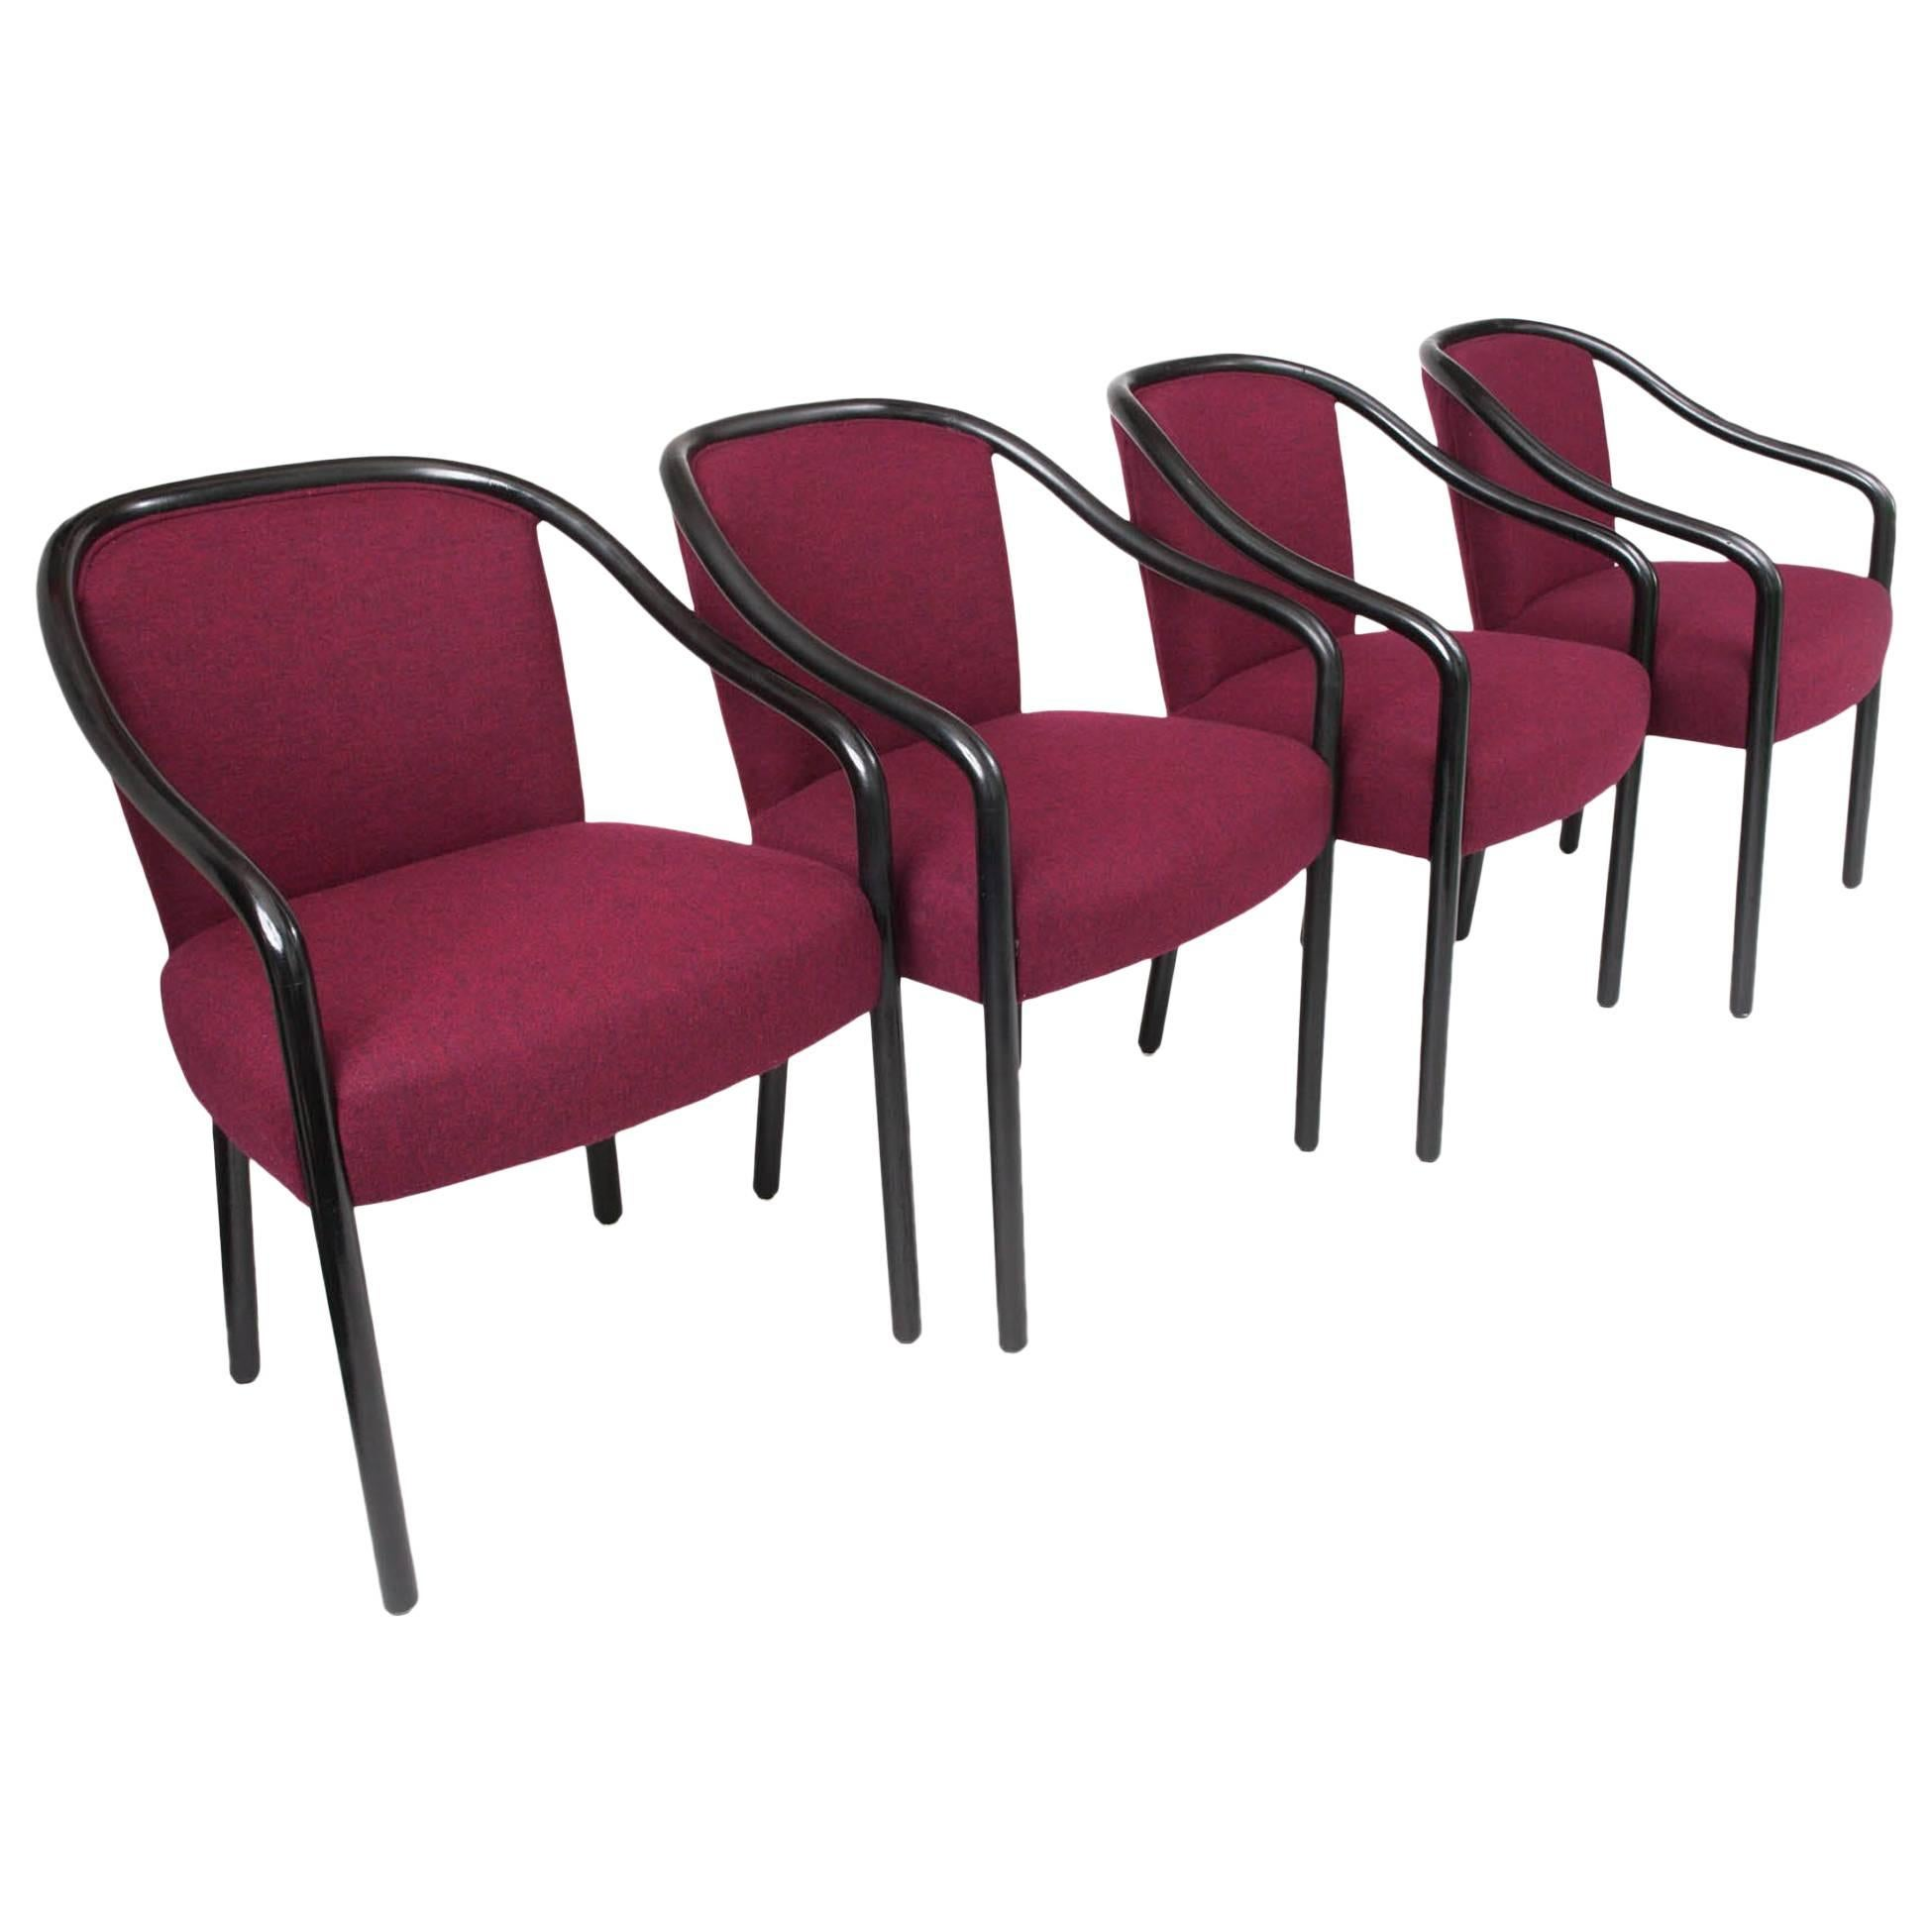 Set of Four Black Lacquered Bentwood Chairs by Ward Bennett, American 1960's